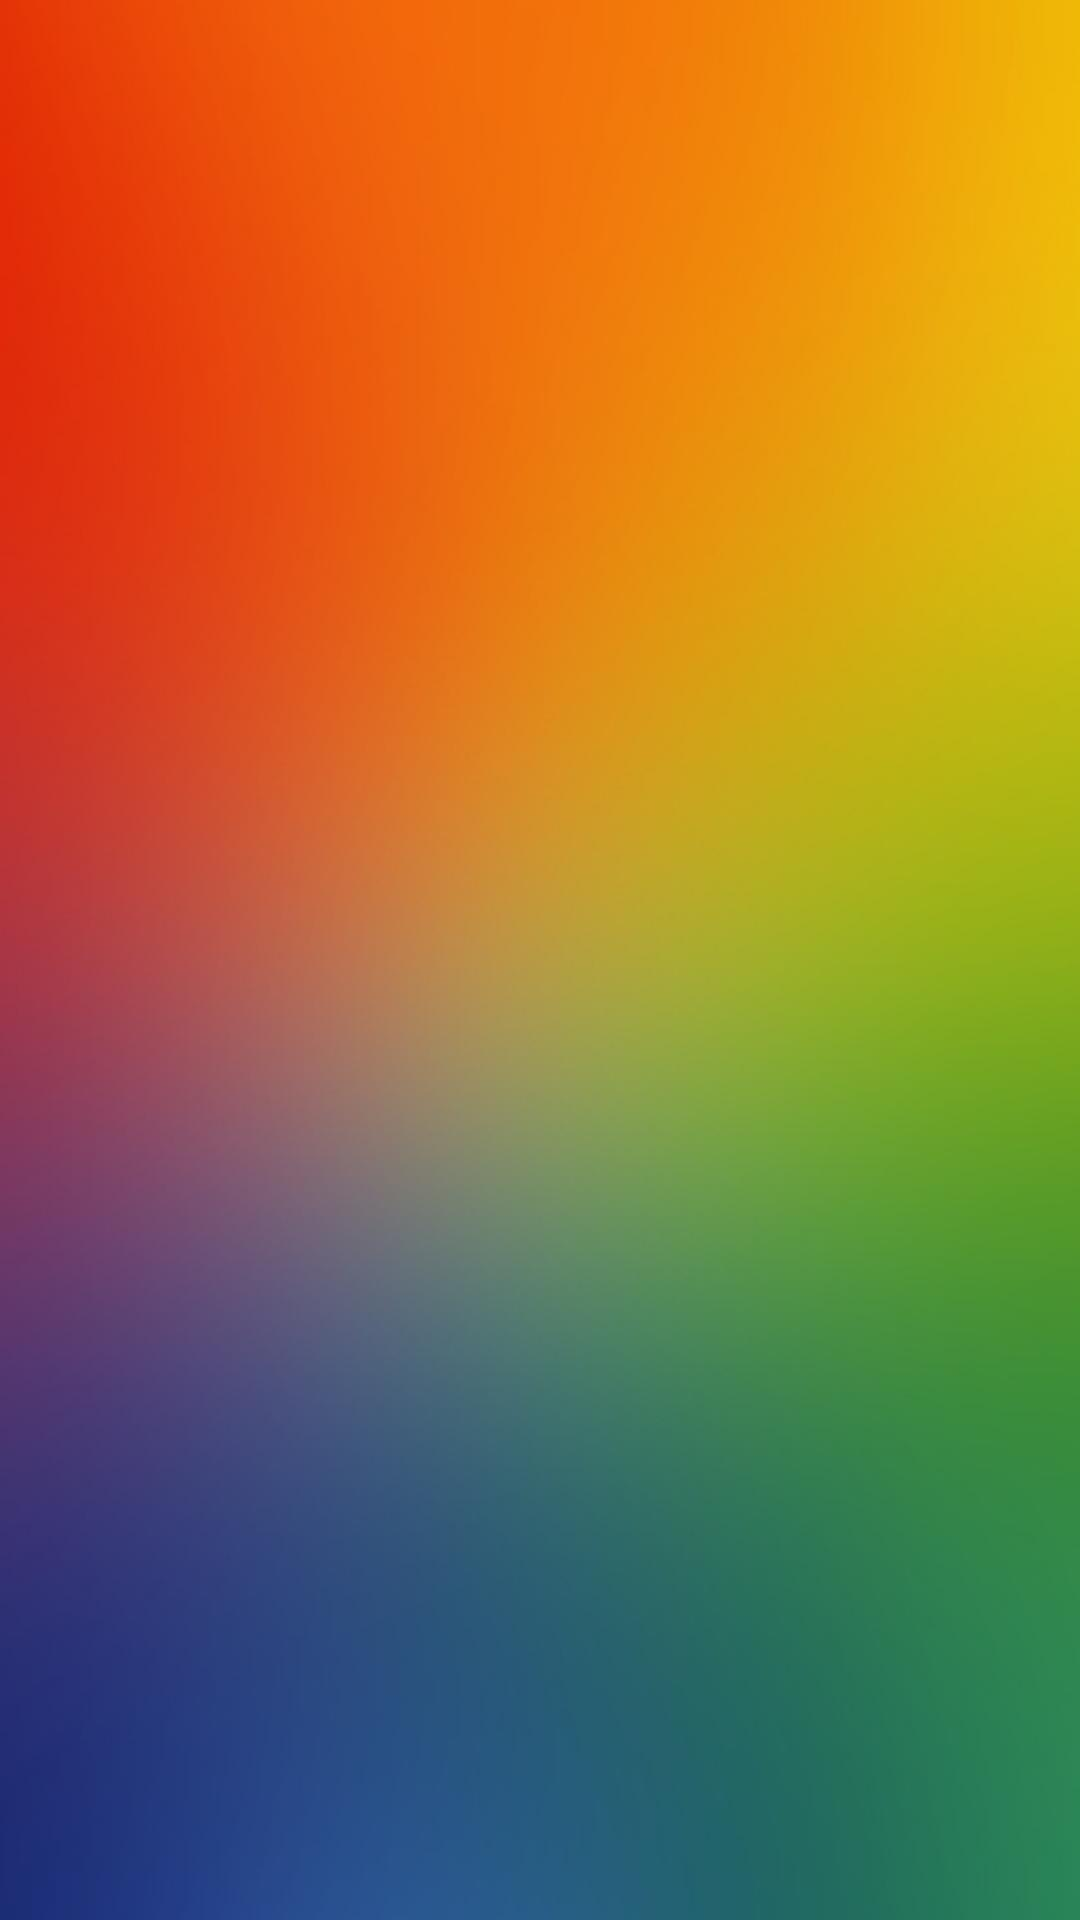 wallpaper apple hd iphone 5